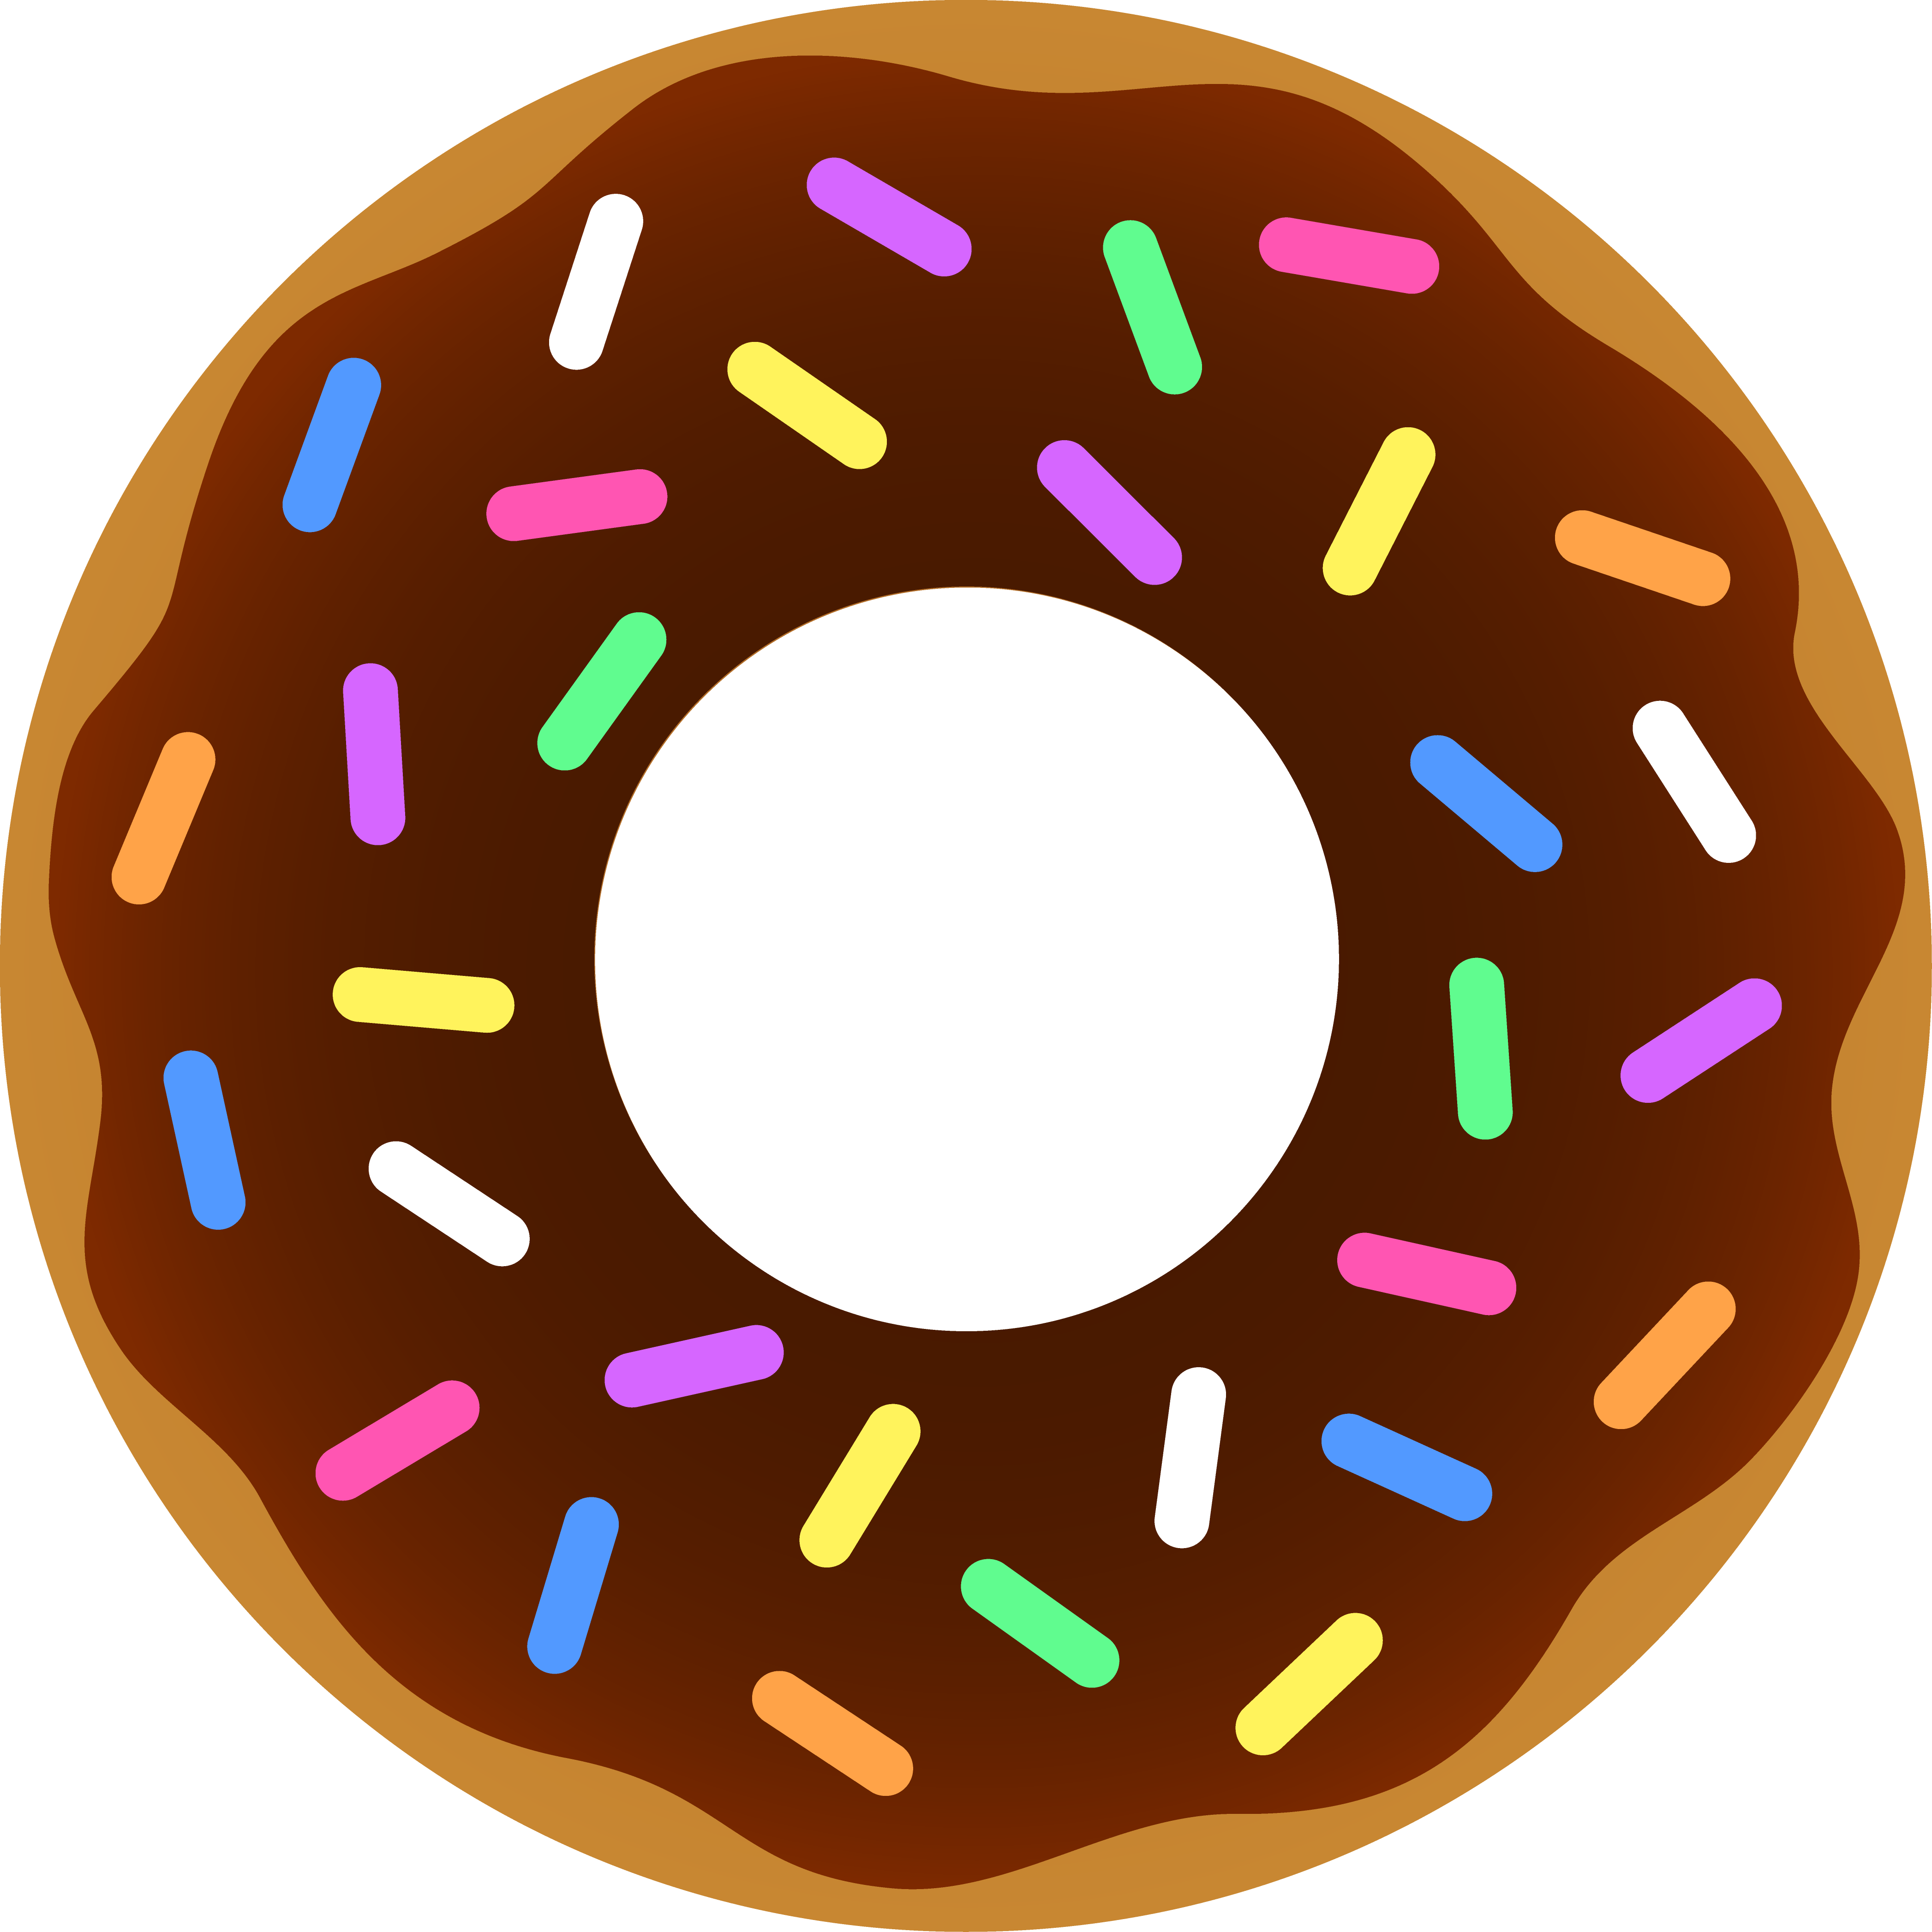 Donut Clipart - ClipArt Best